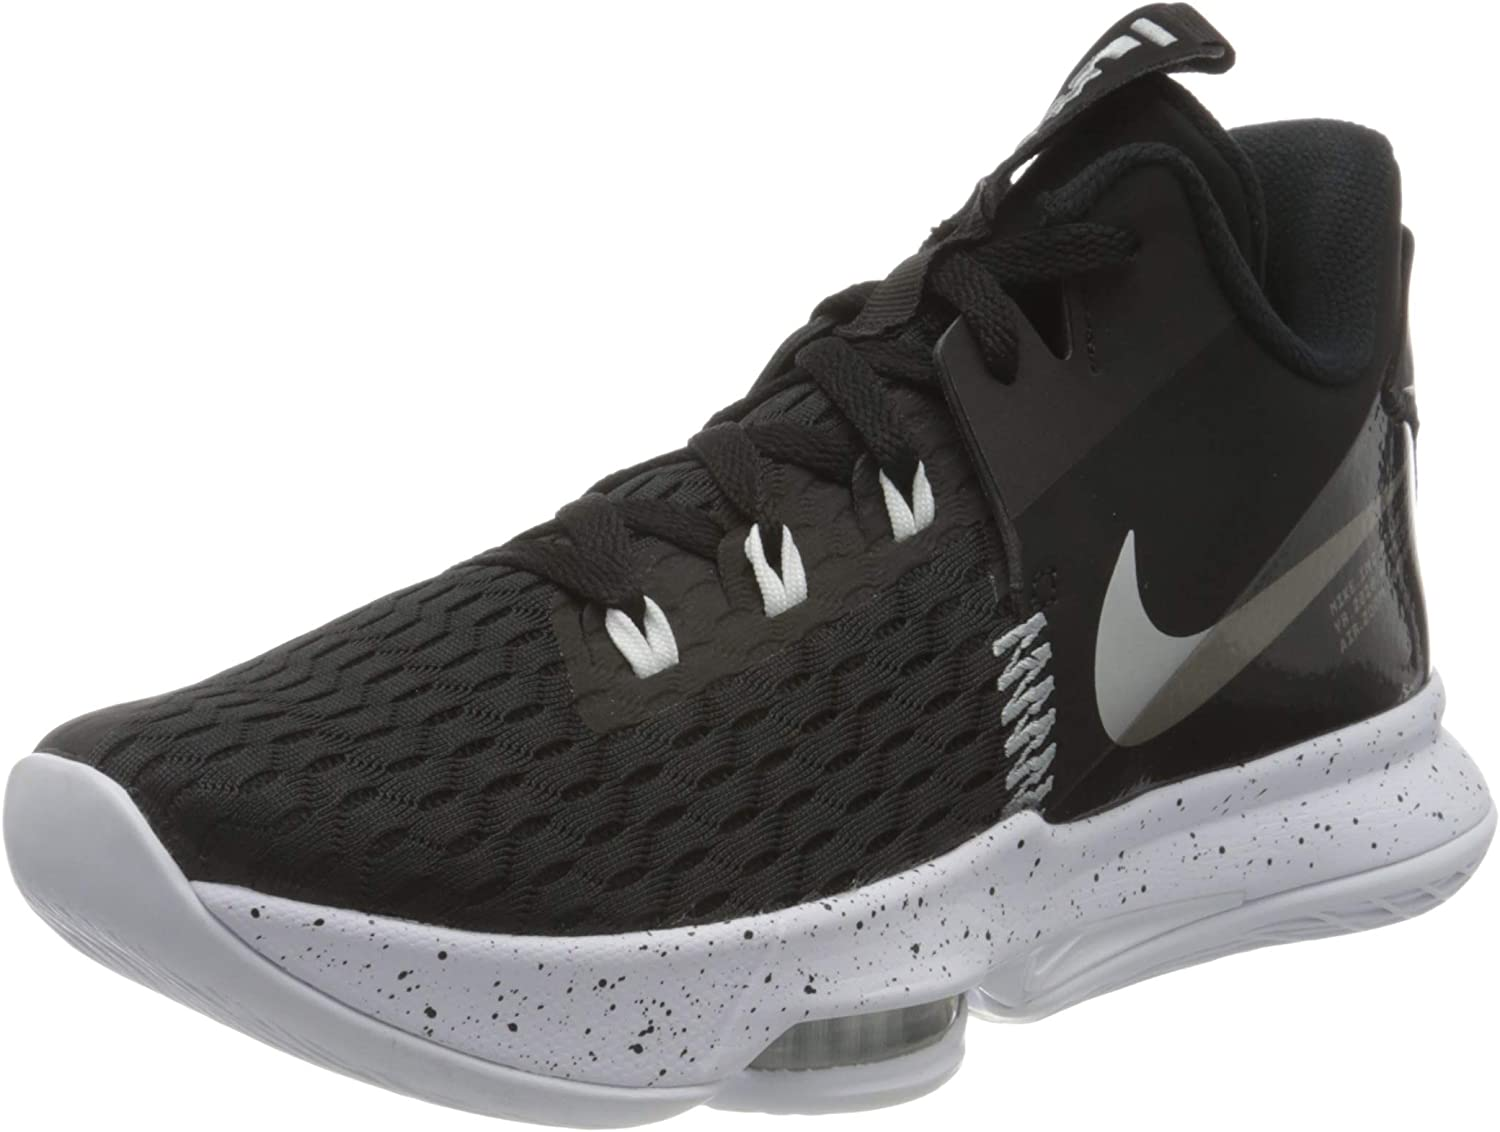 Nike Men's Sneakers Raleigh Mall San Diego Mall Low-Top